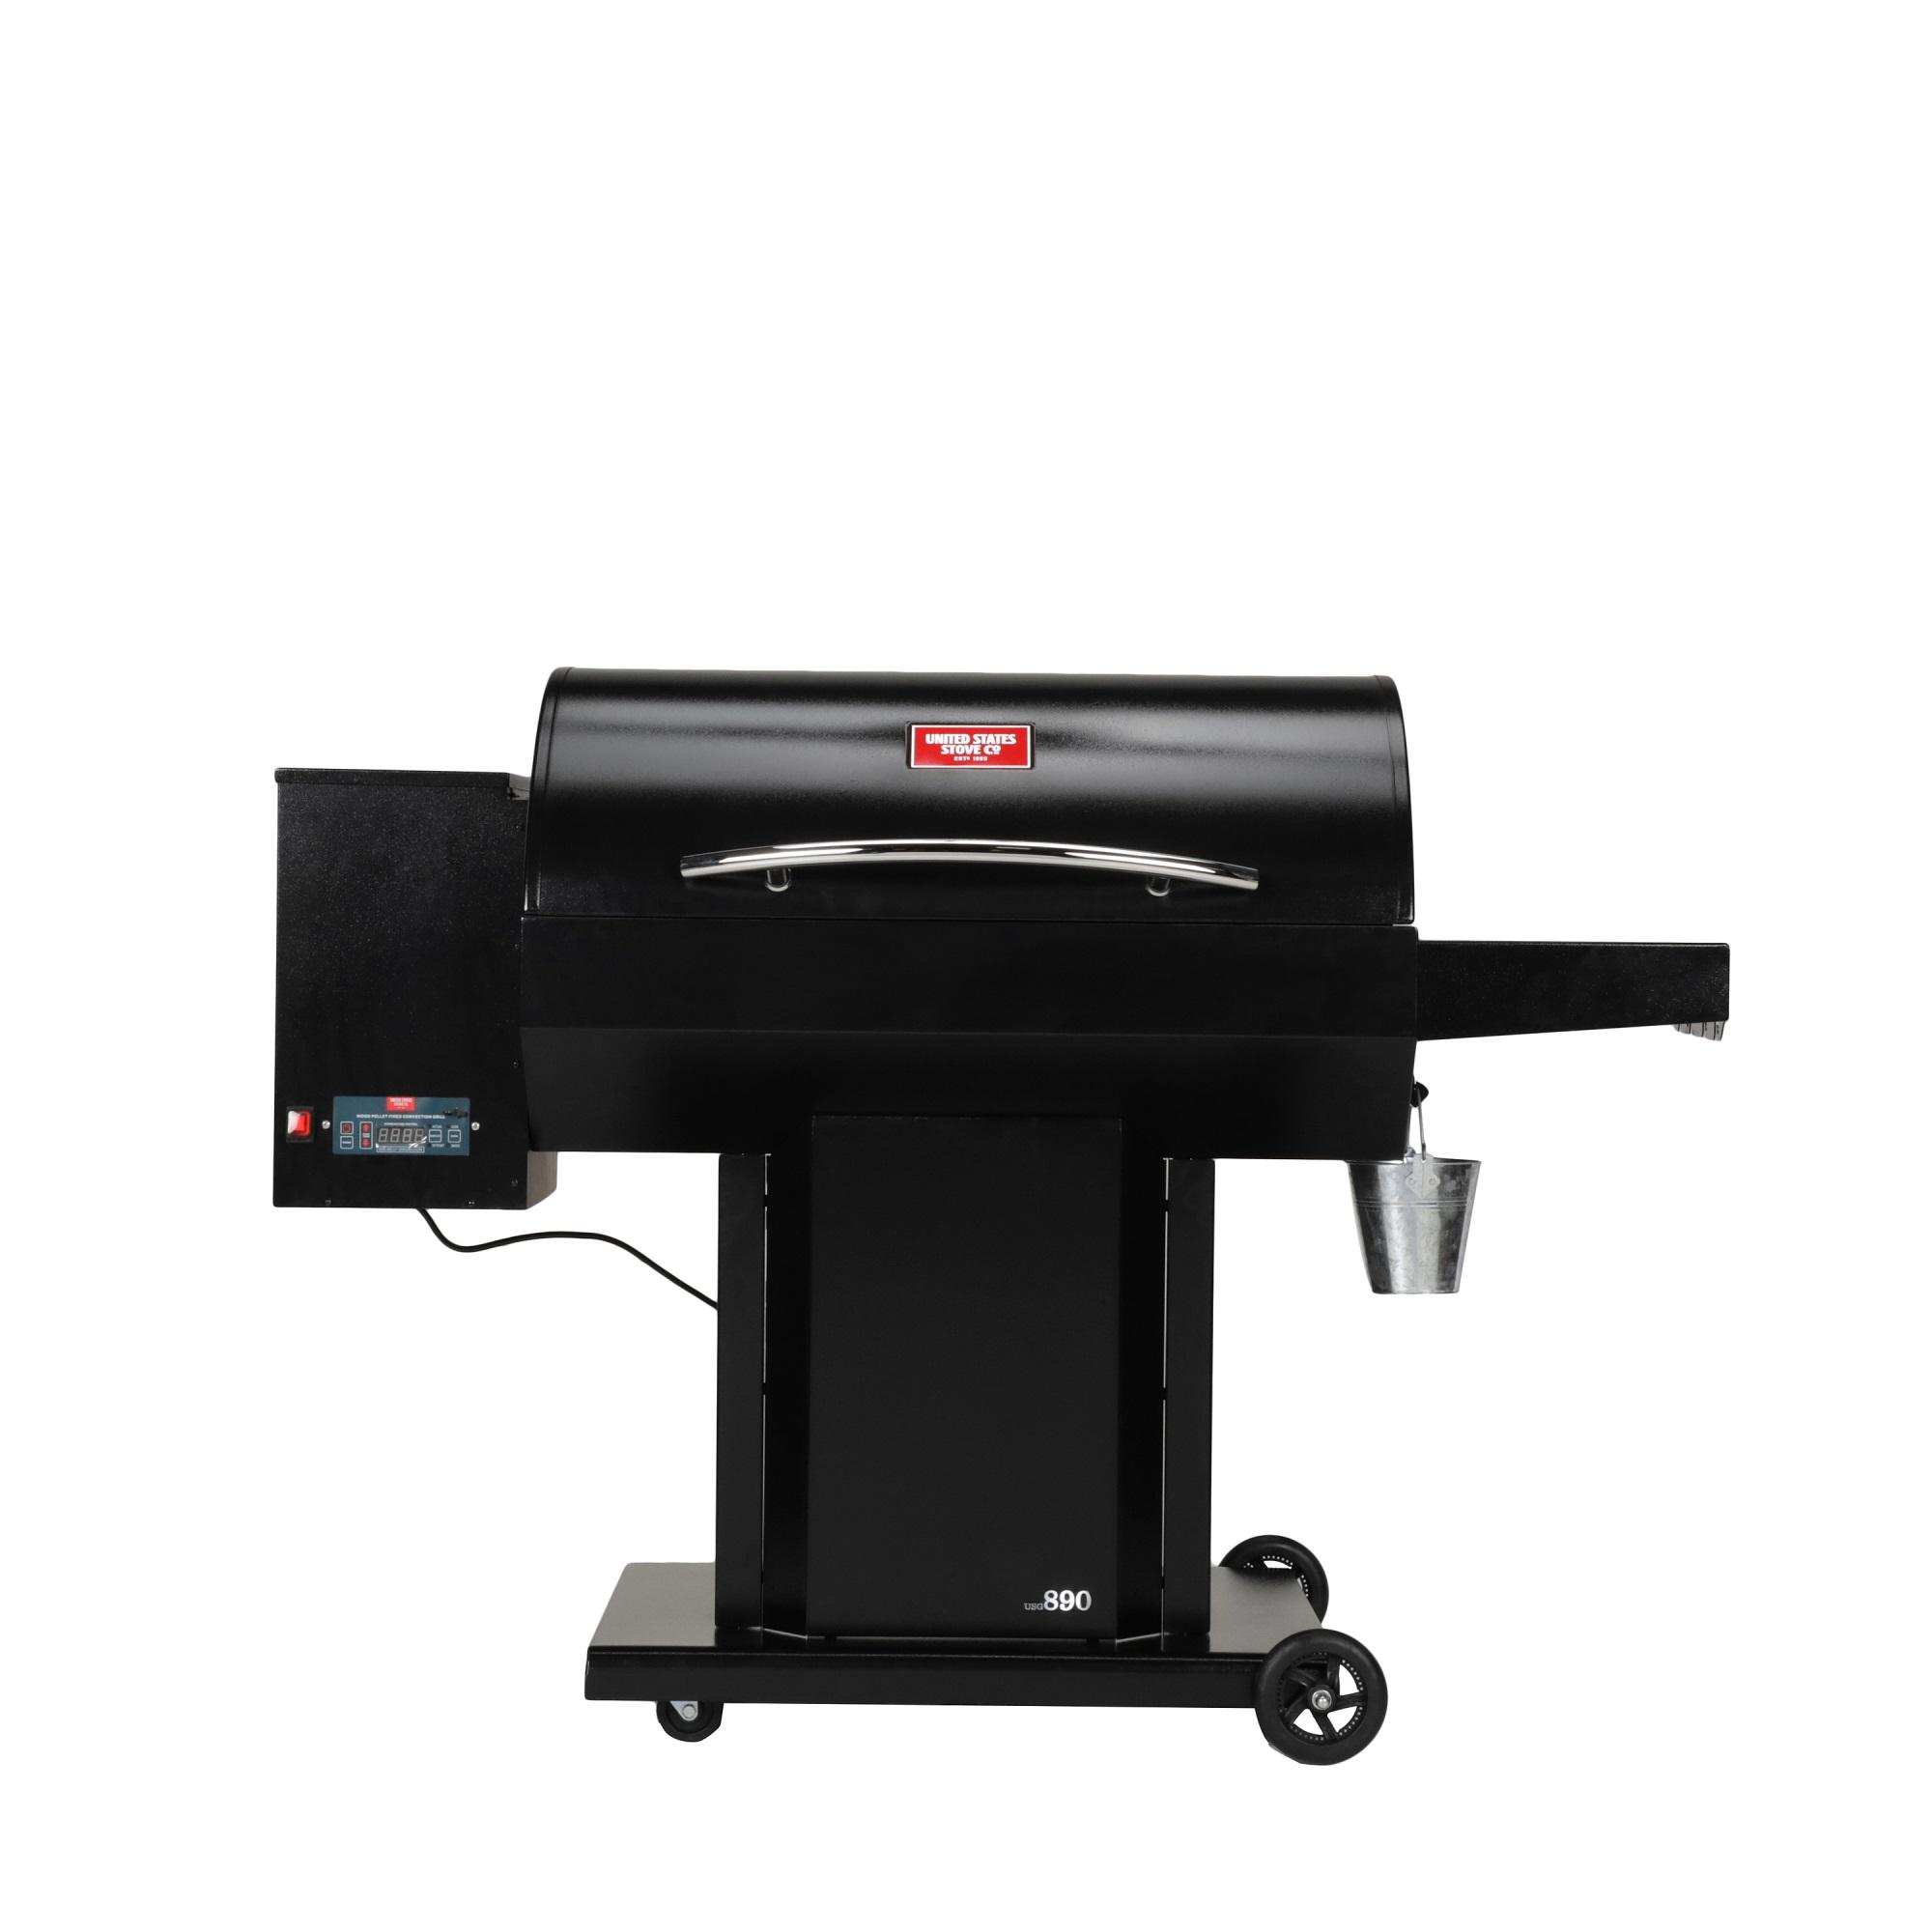 The Irondale USG890 Wood Pellet Grill and Smoker